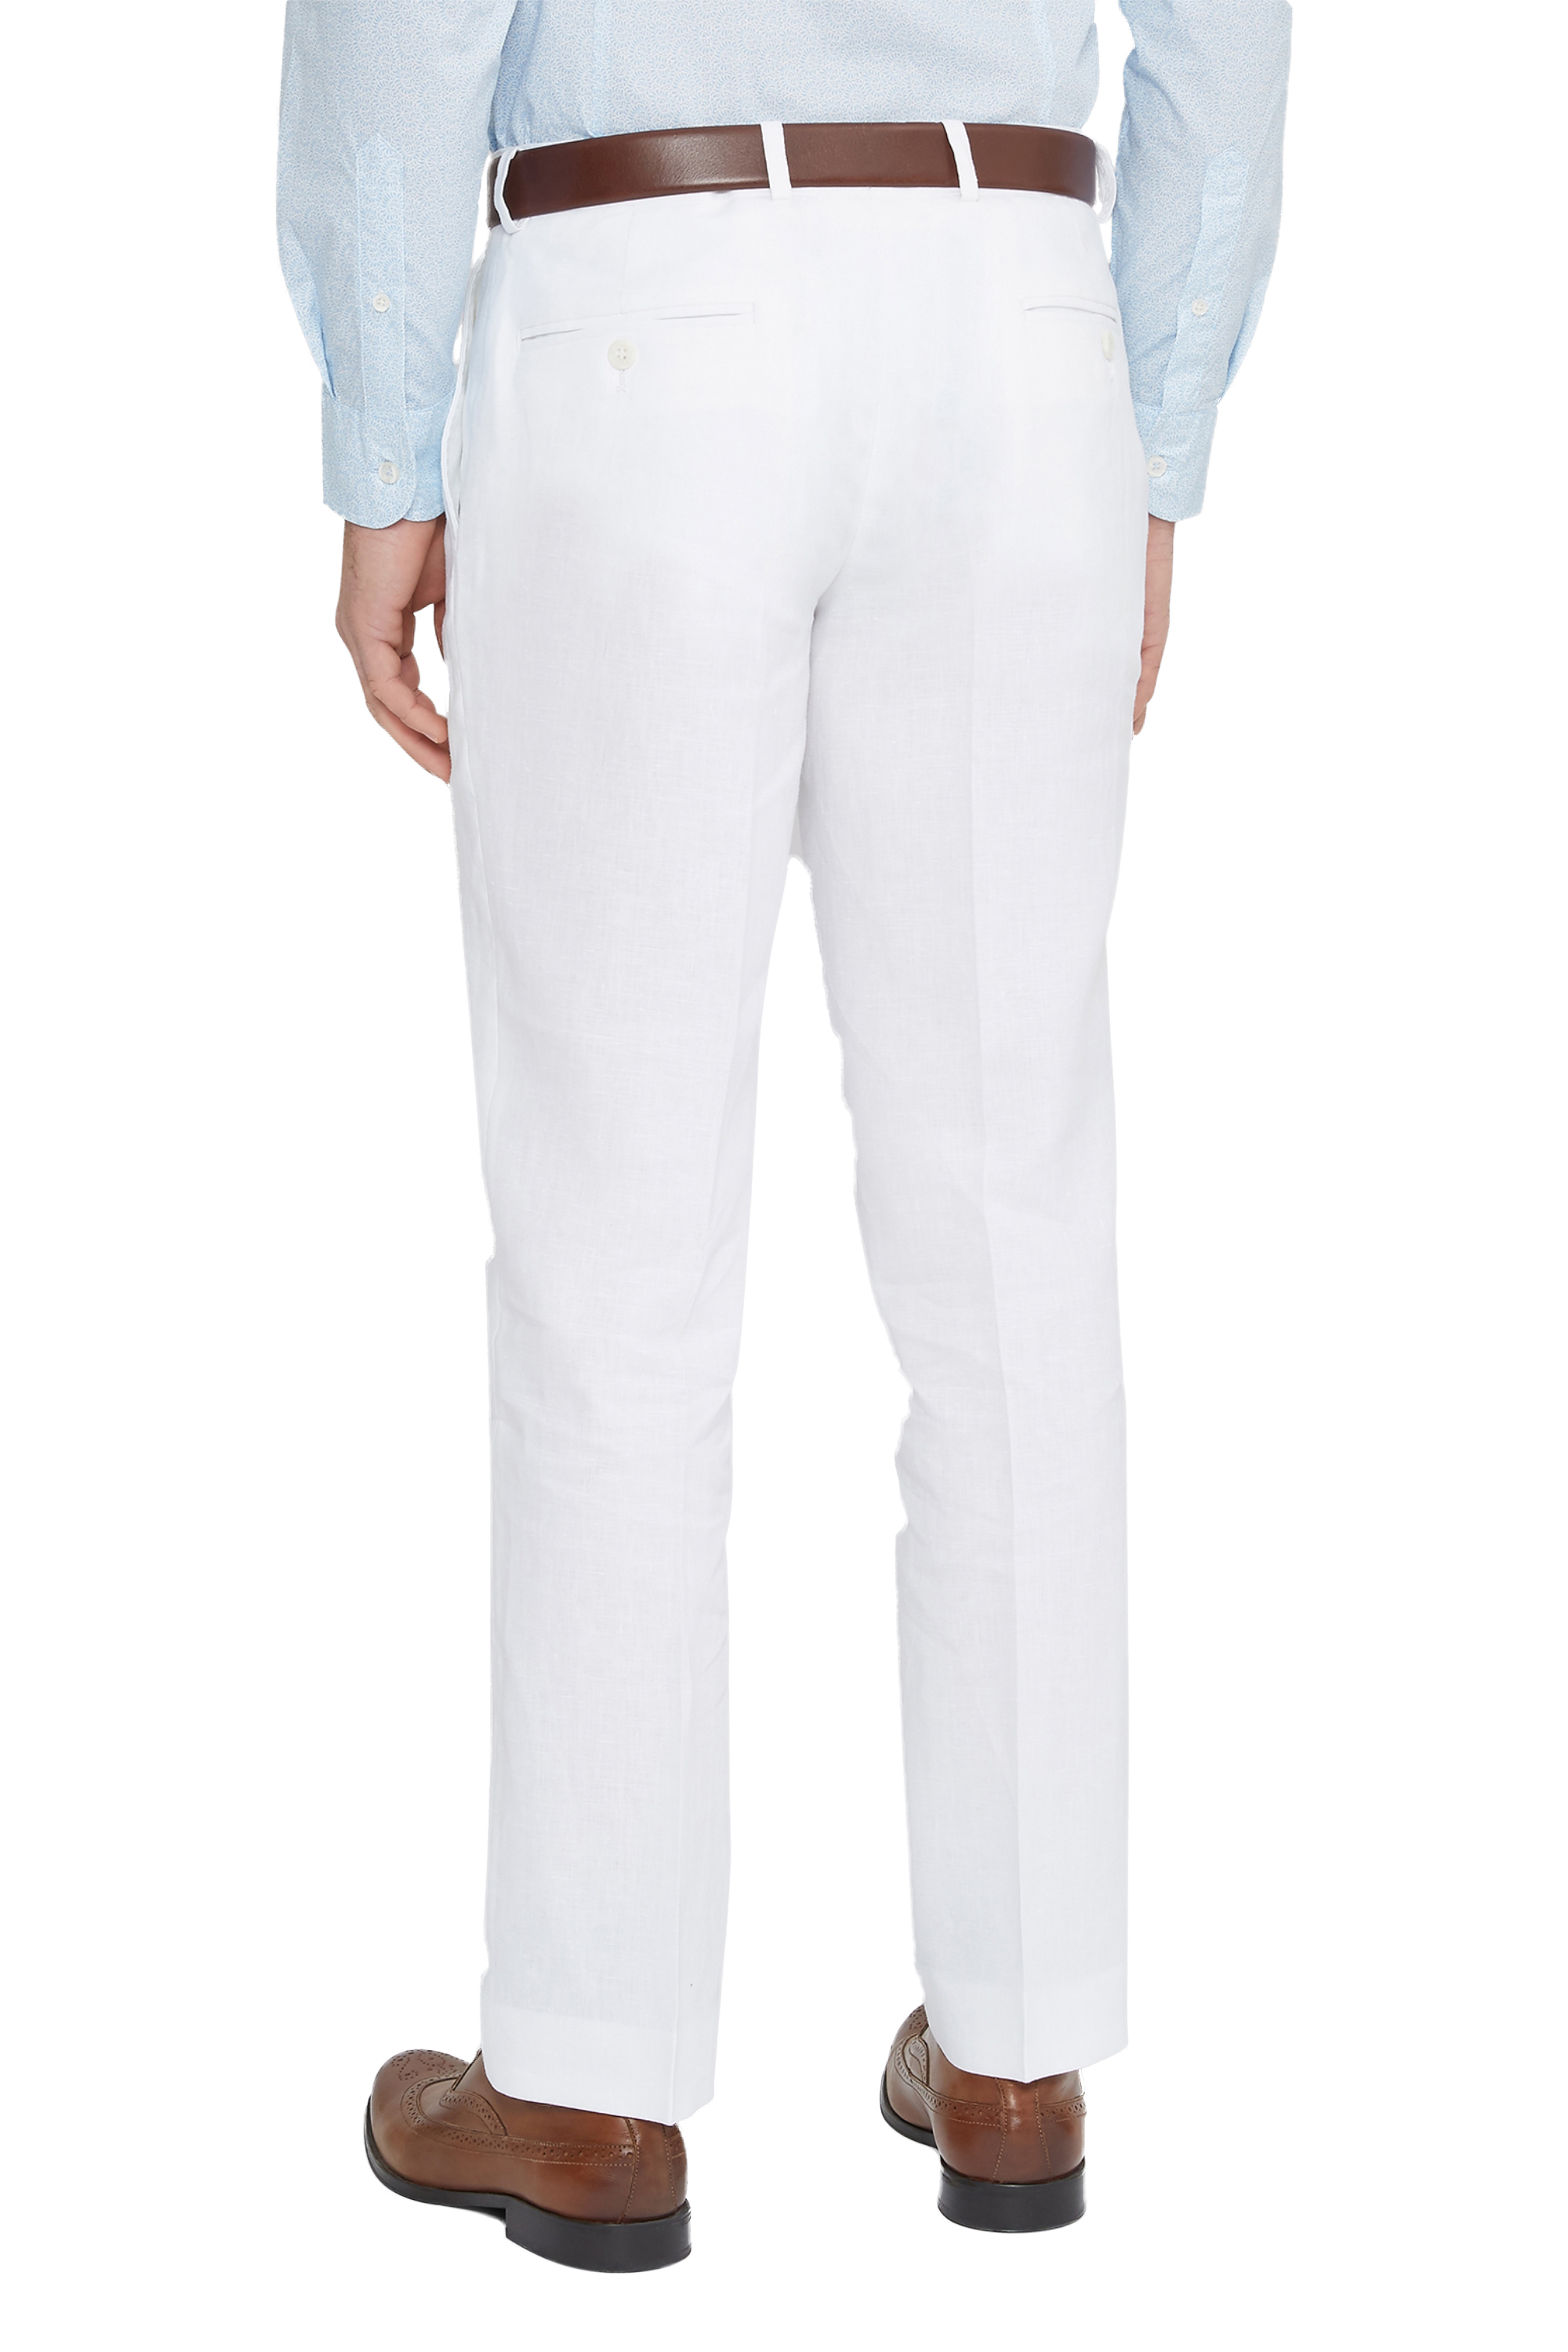 A casual trouser like these men's linen trousers, are an essential for spring/summer. With the option to roll them up as cropped trousers or wear them full length, plus front and back pockets and a zip fly, these linen trousers can be worn with shirts and T-shirts, depending on the occasion.